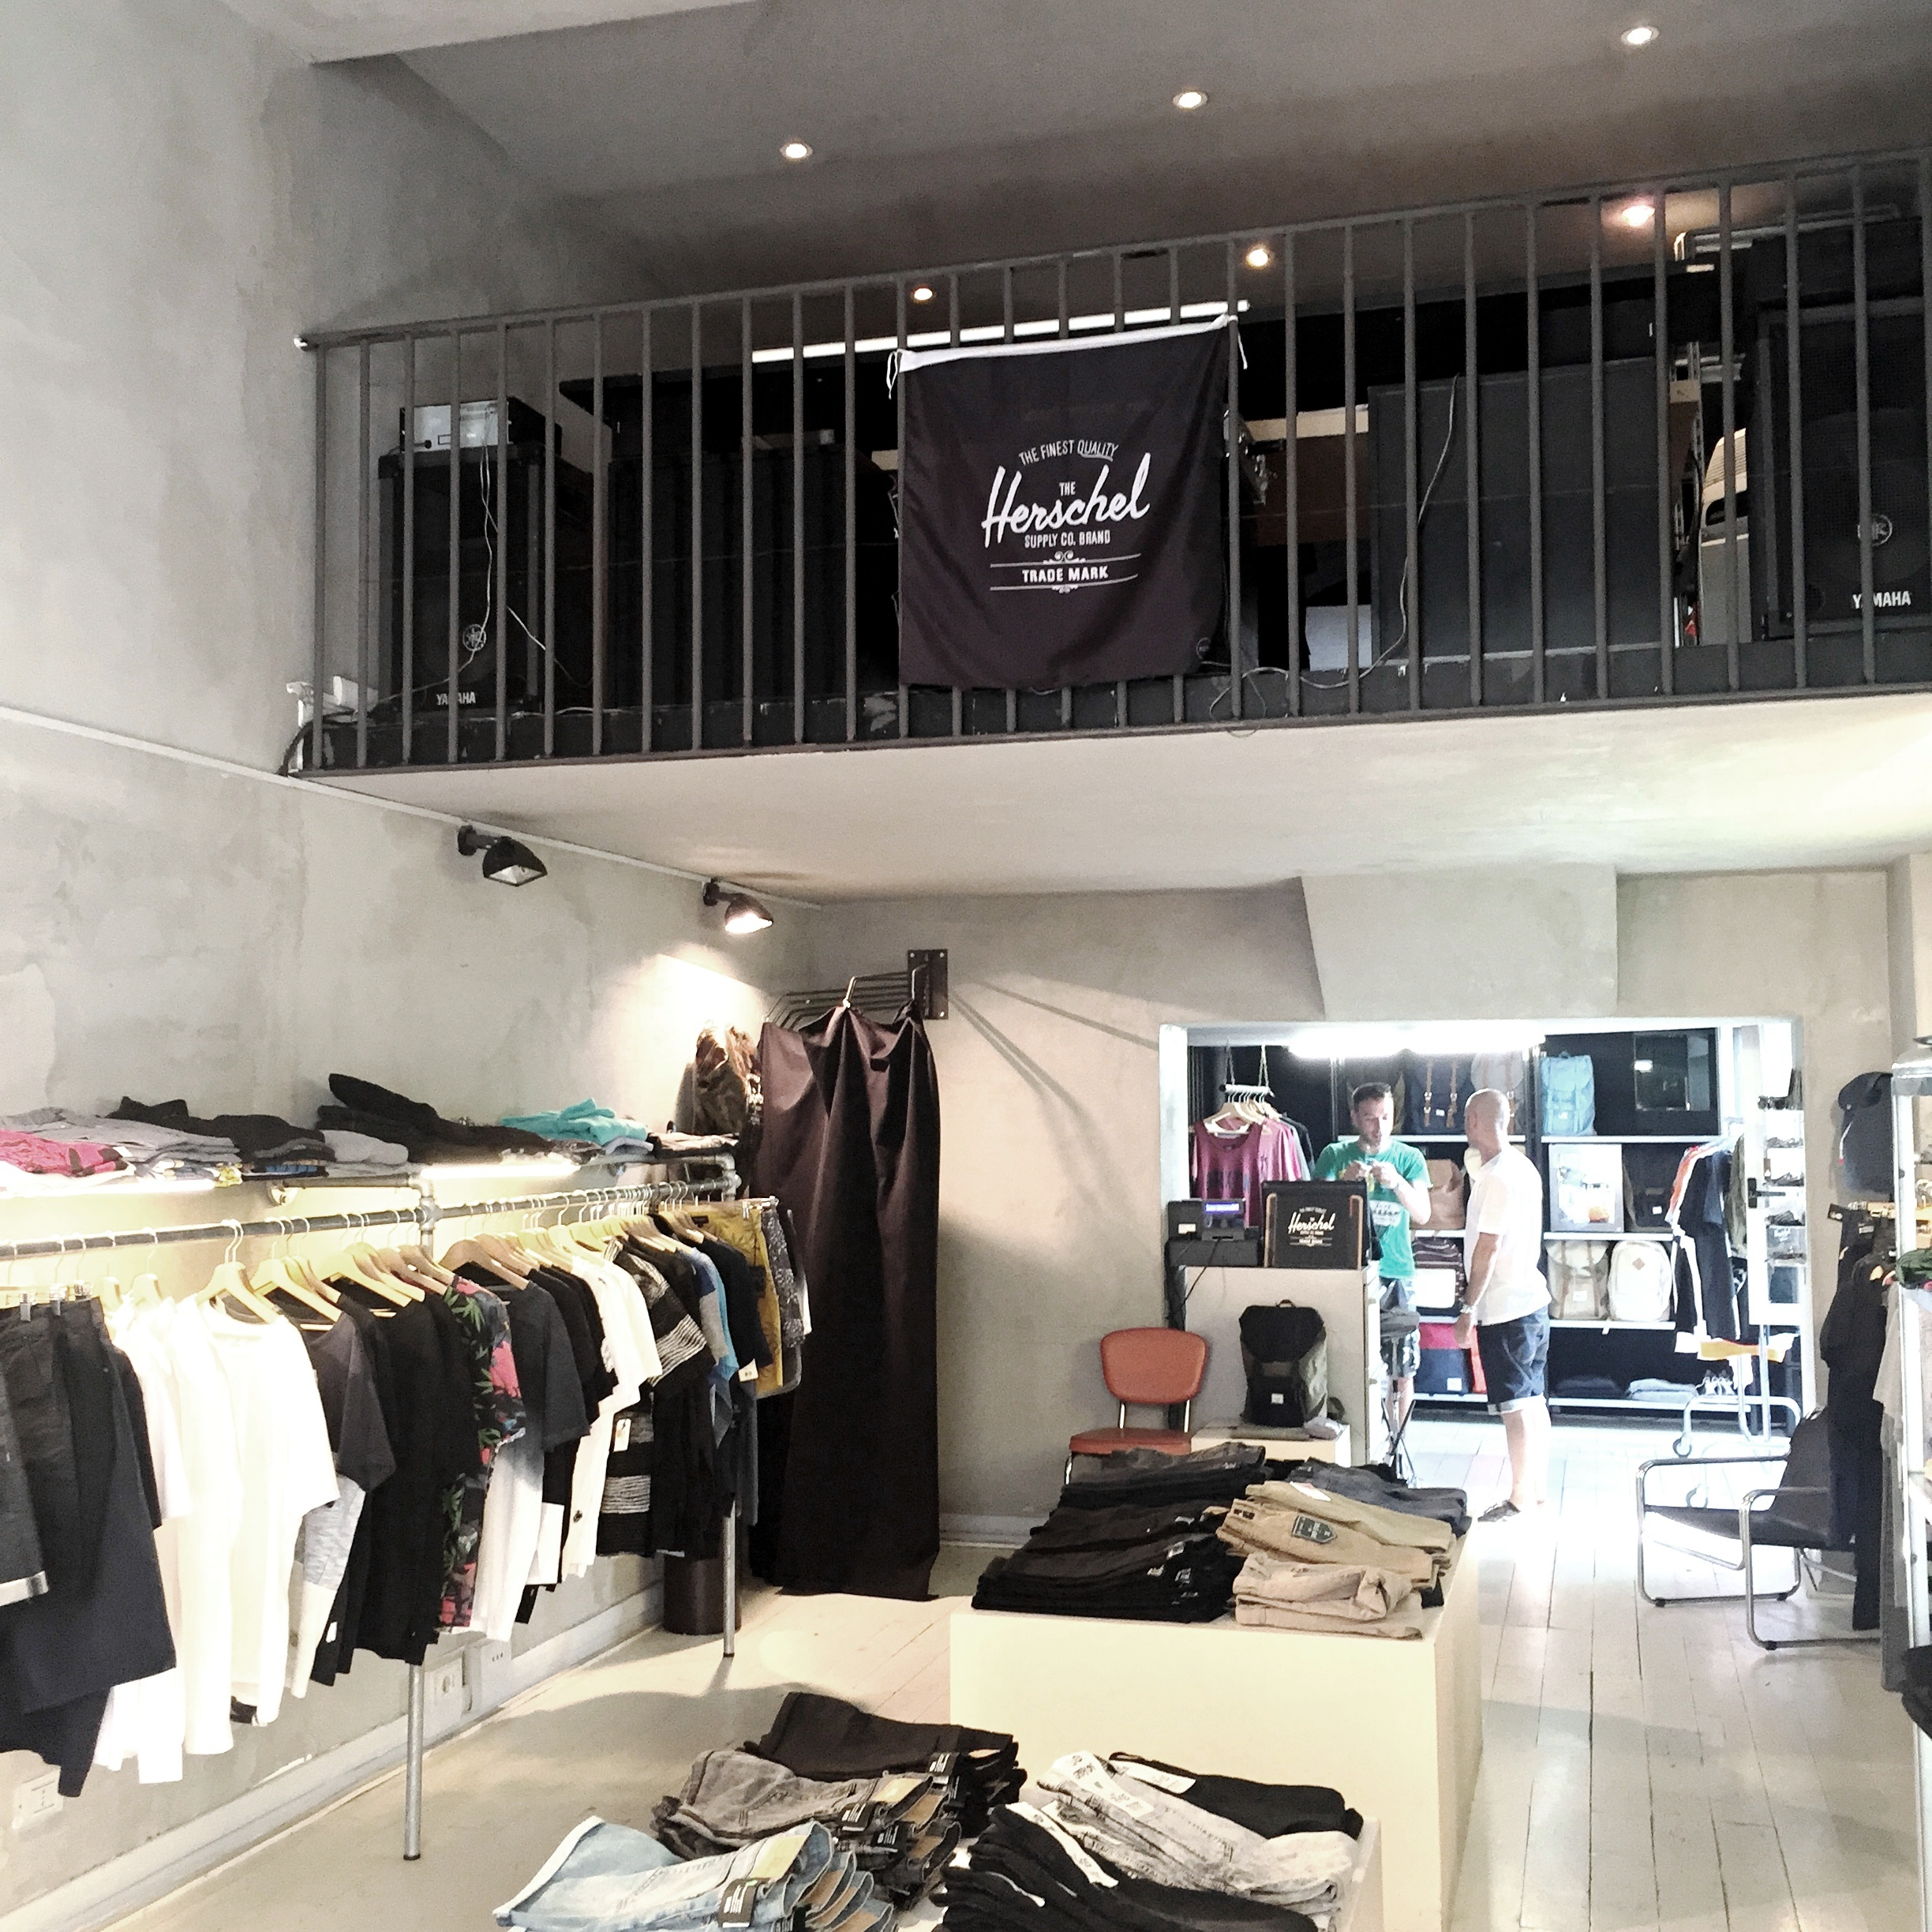 Tortona 5 - Loft, Negozio, Showroom di 50mq in Via Tortona 5 | location disallestita 4